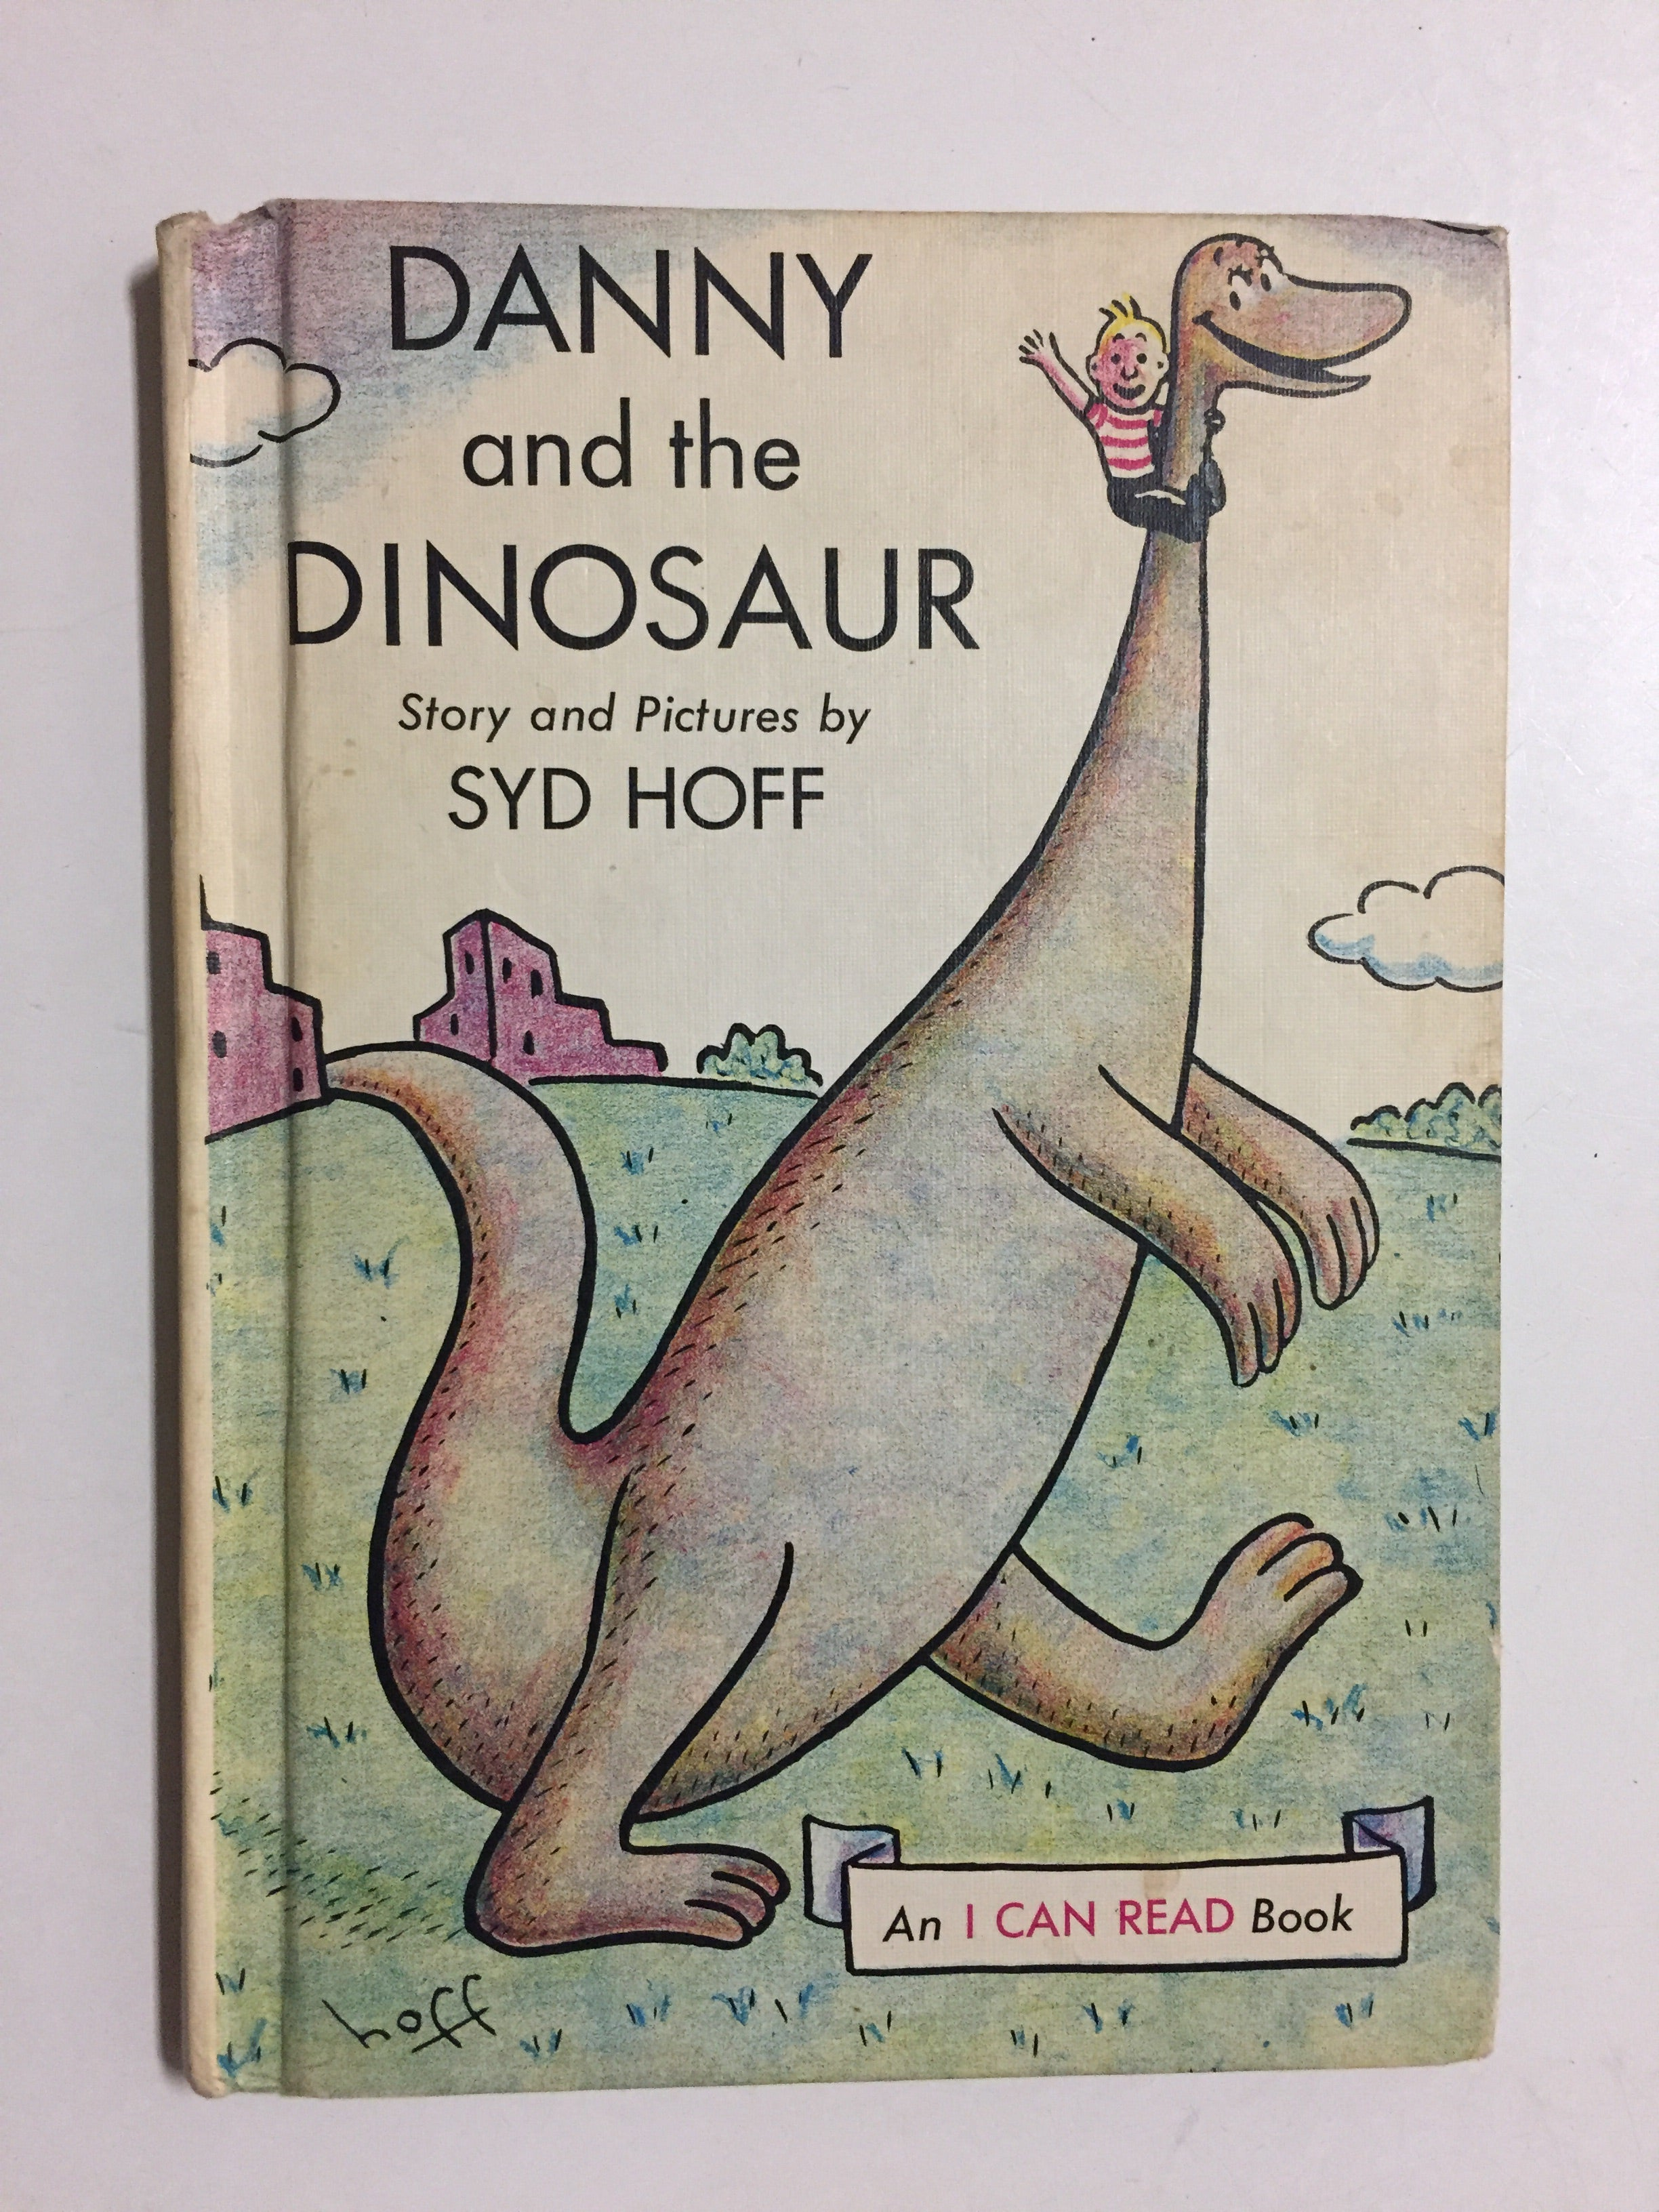 Danny and the Dinosaur - Slick Cat Books